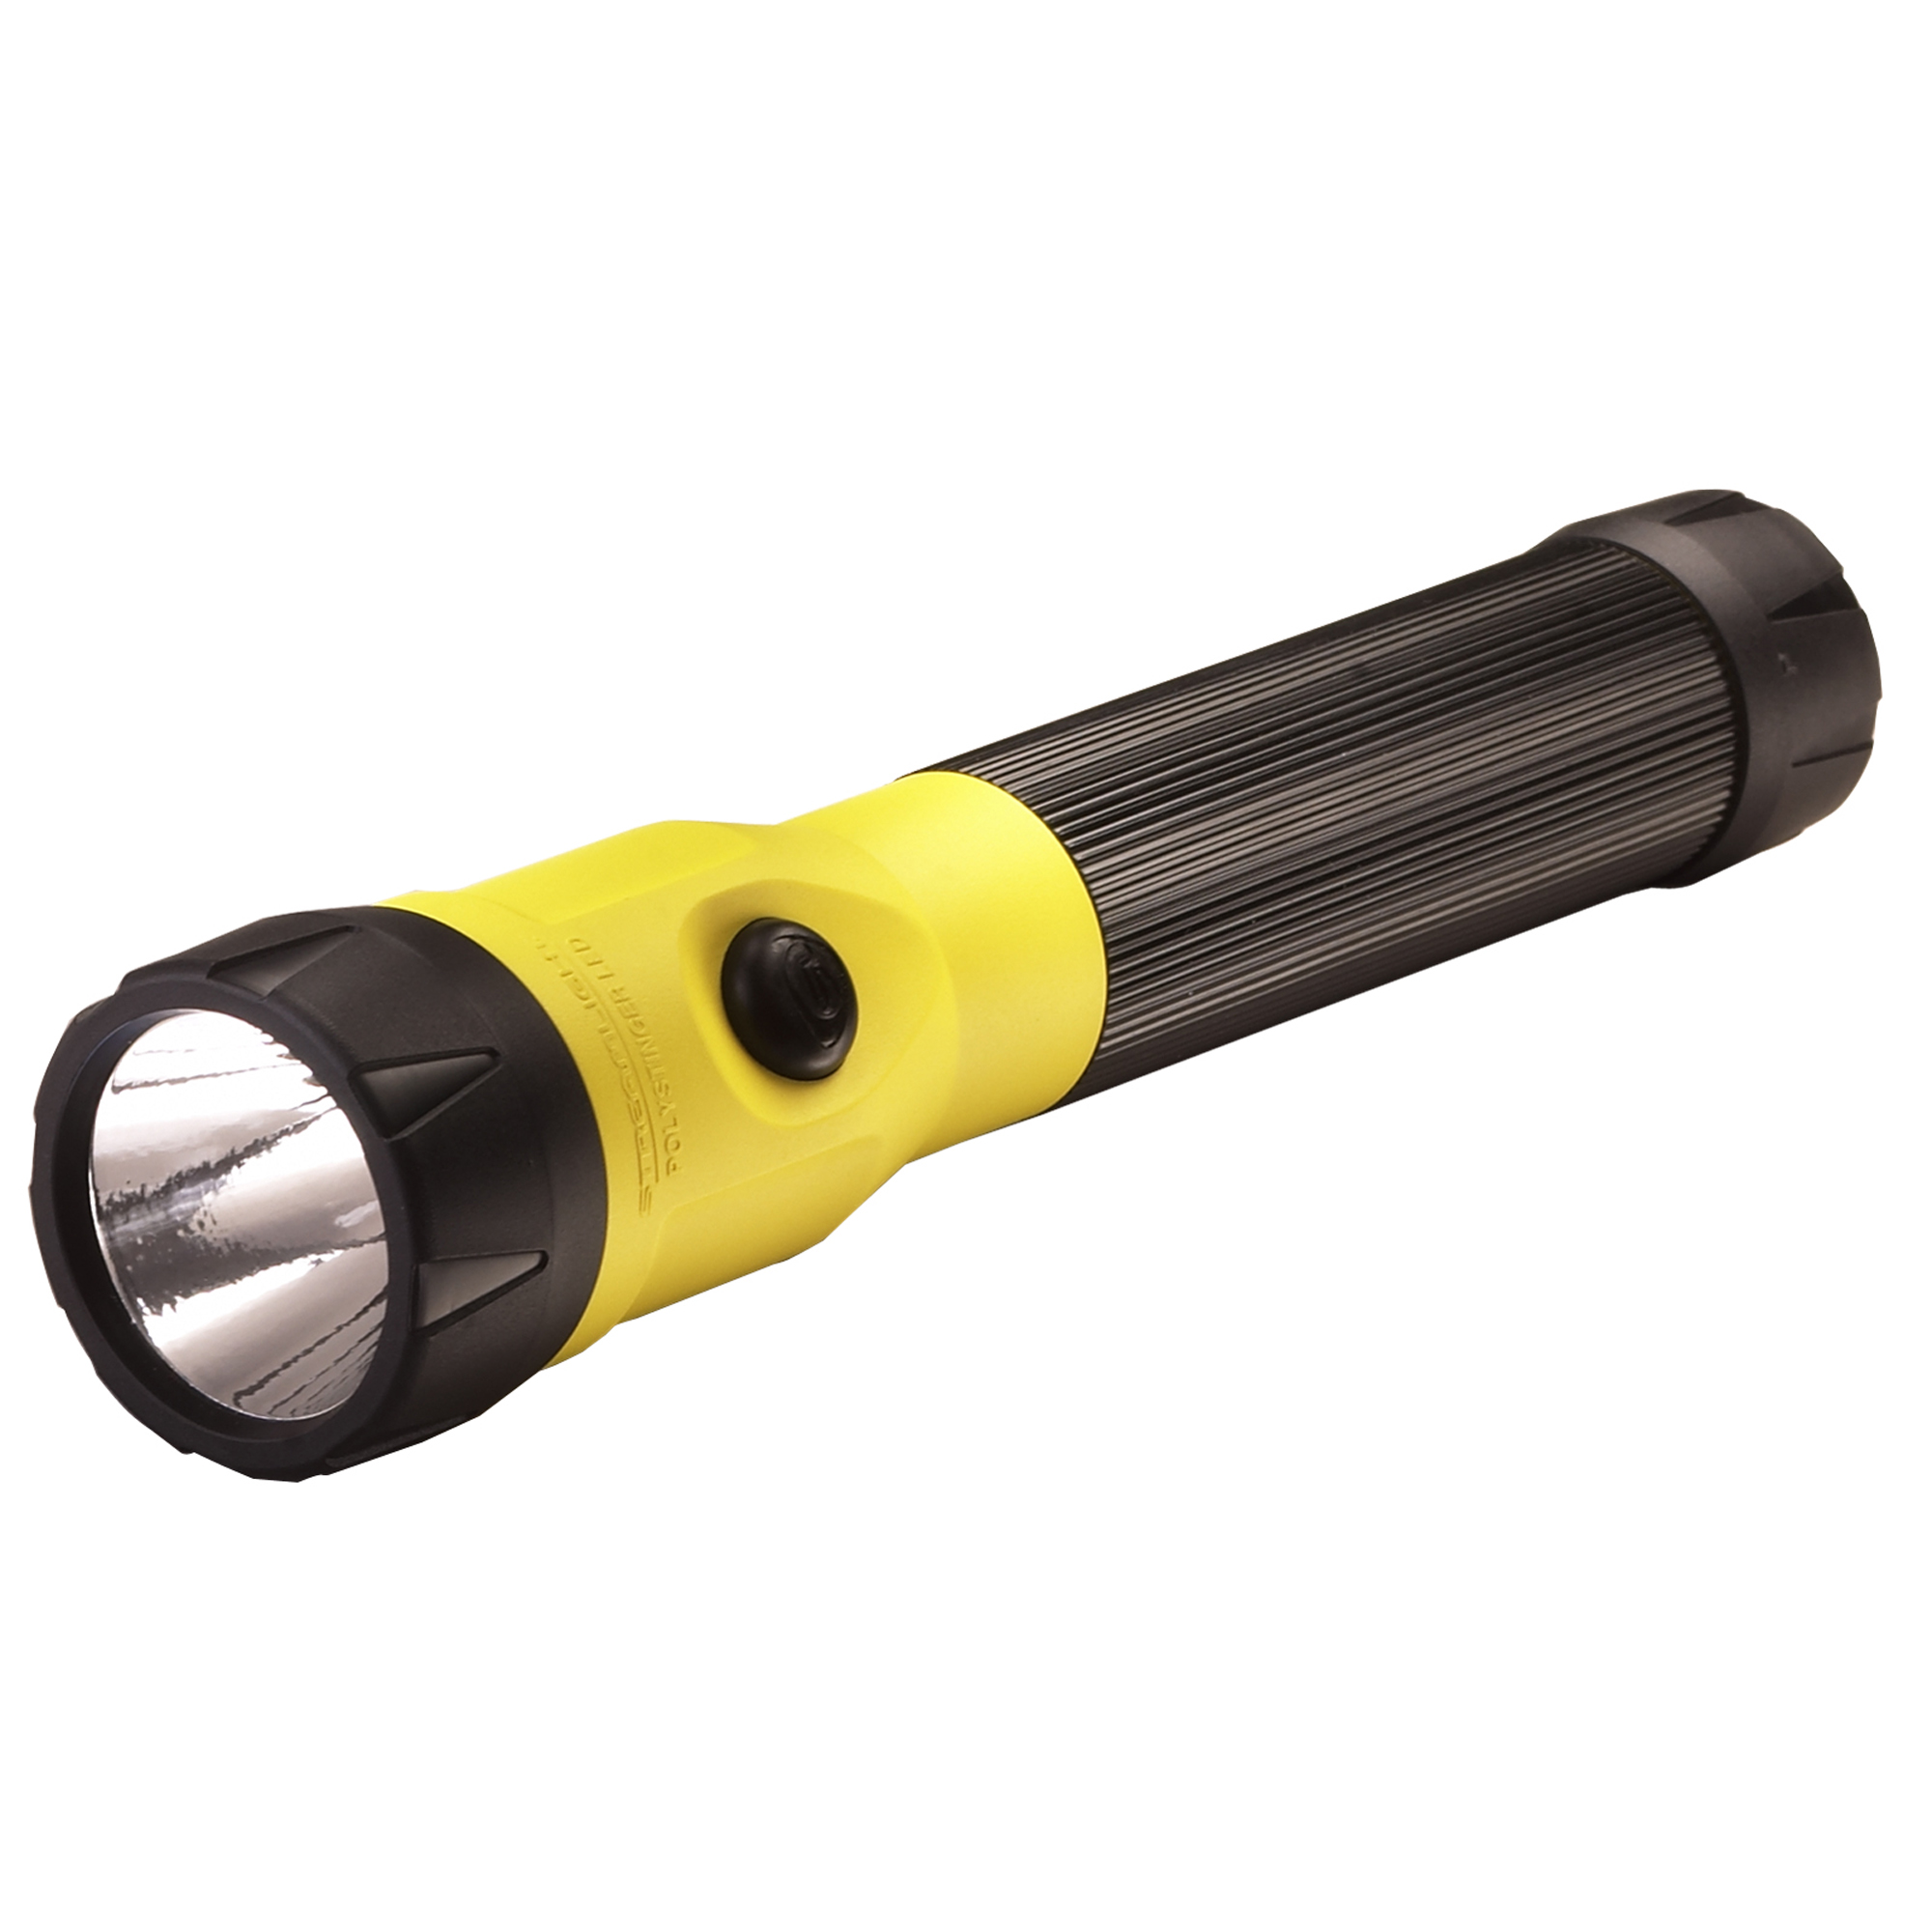 Streamlight PolyStinger LED w 120V AC DC Chargers, 2 Holders, Yellow by Streamlight